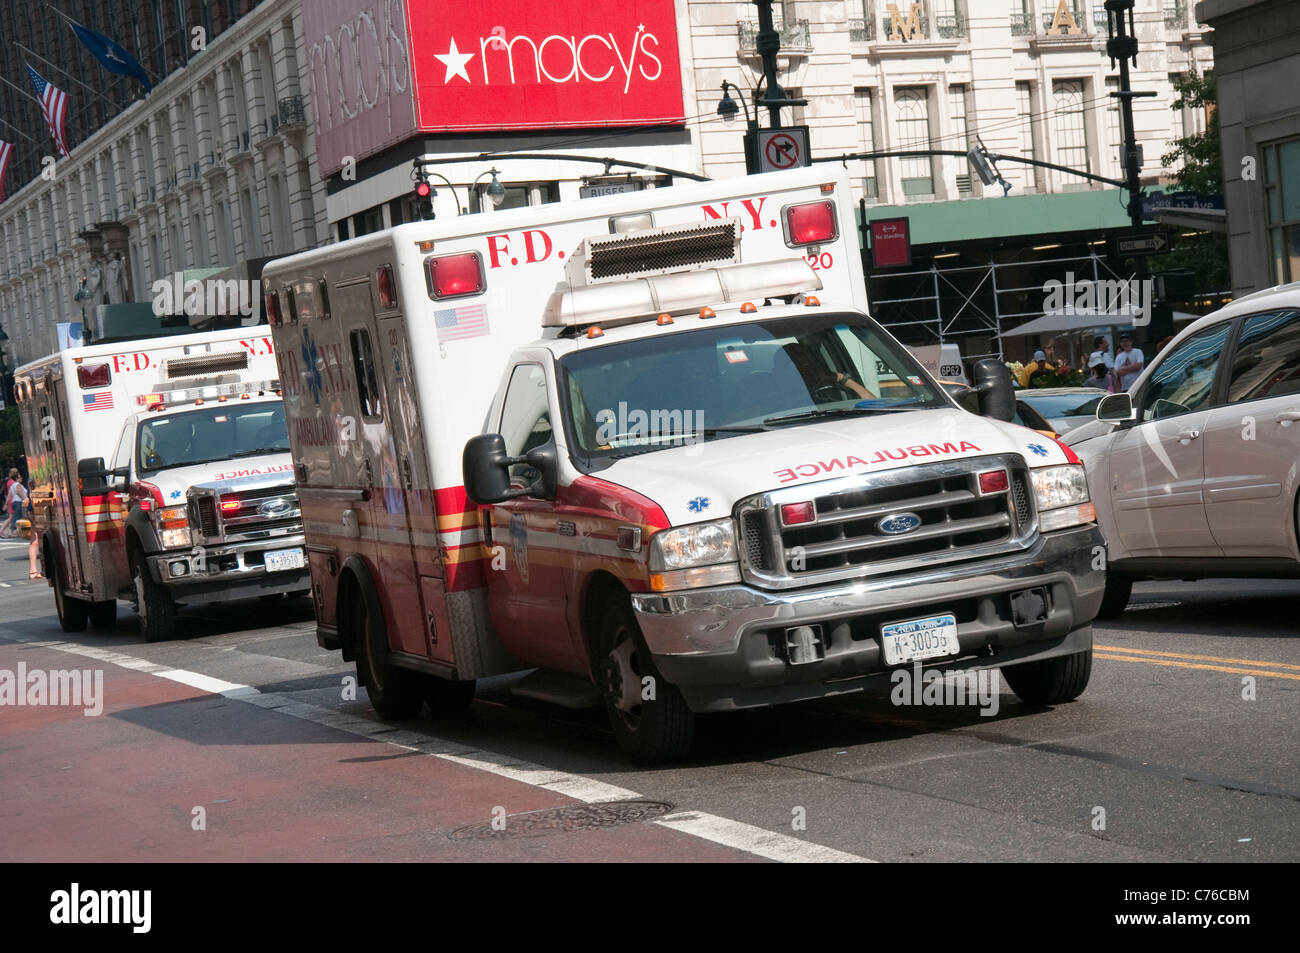 Ambulances on 34th St in New York, USA - Stock Image